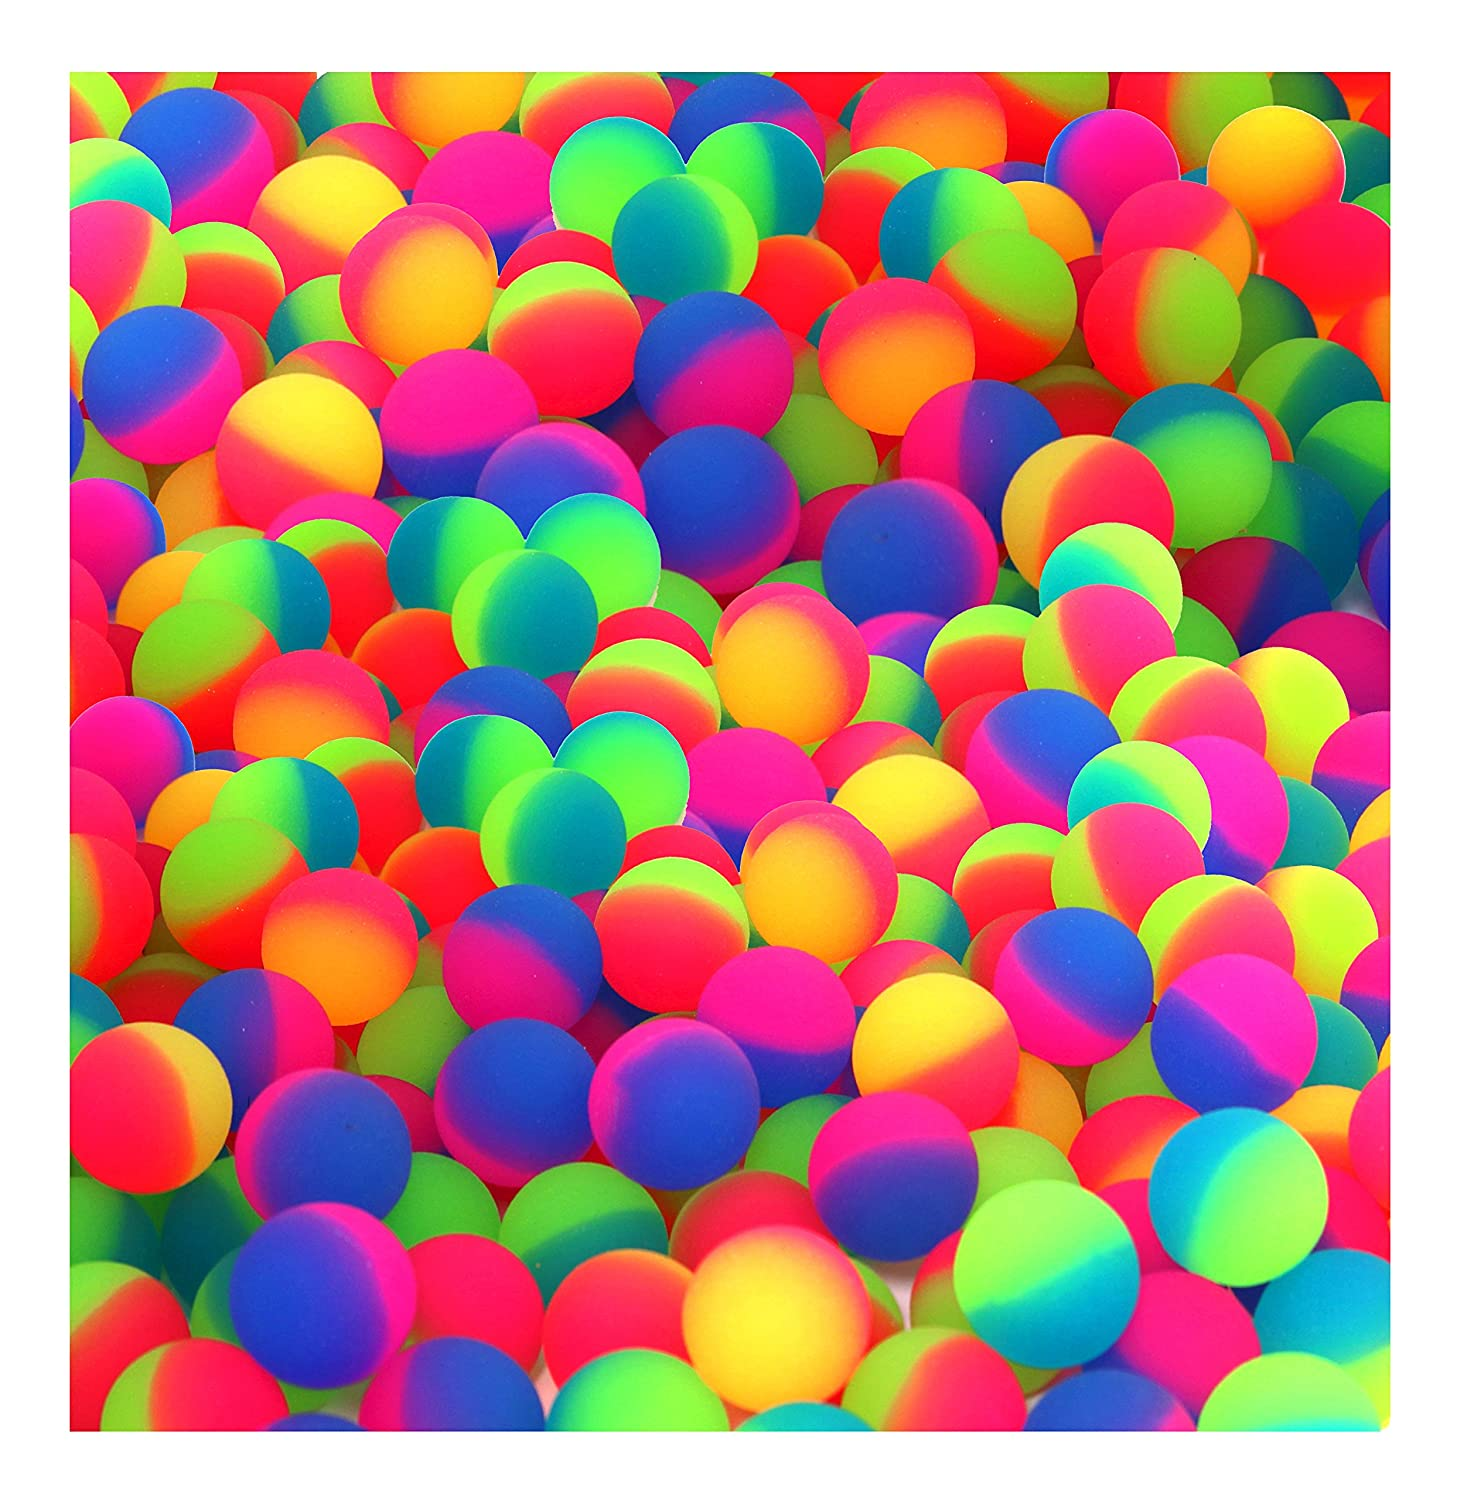 Icy Balls In Bright 2 Two Tone Colors 27mm Bouncy Balls Bulk Pack Of 144